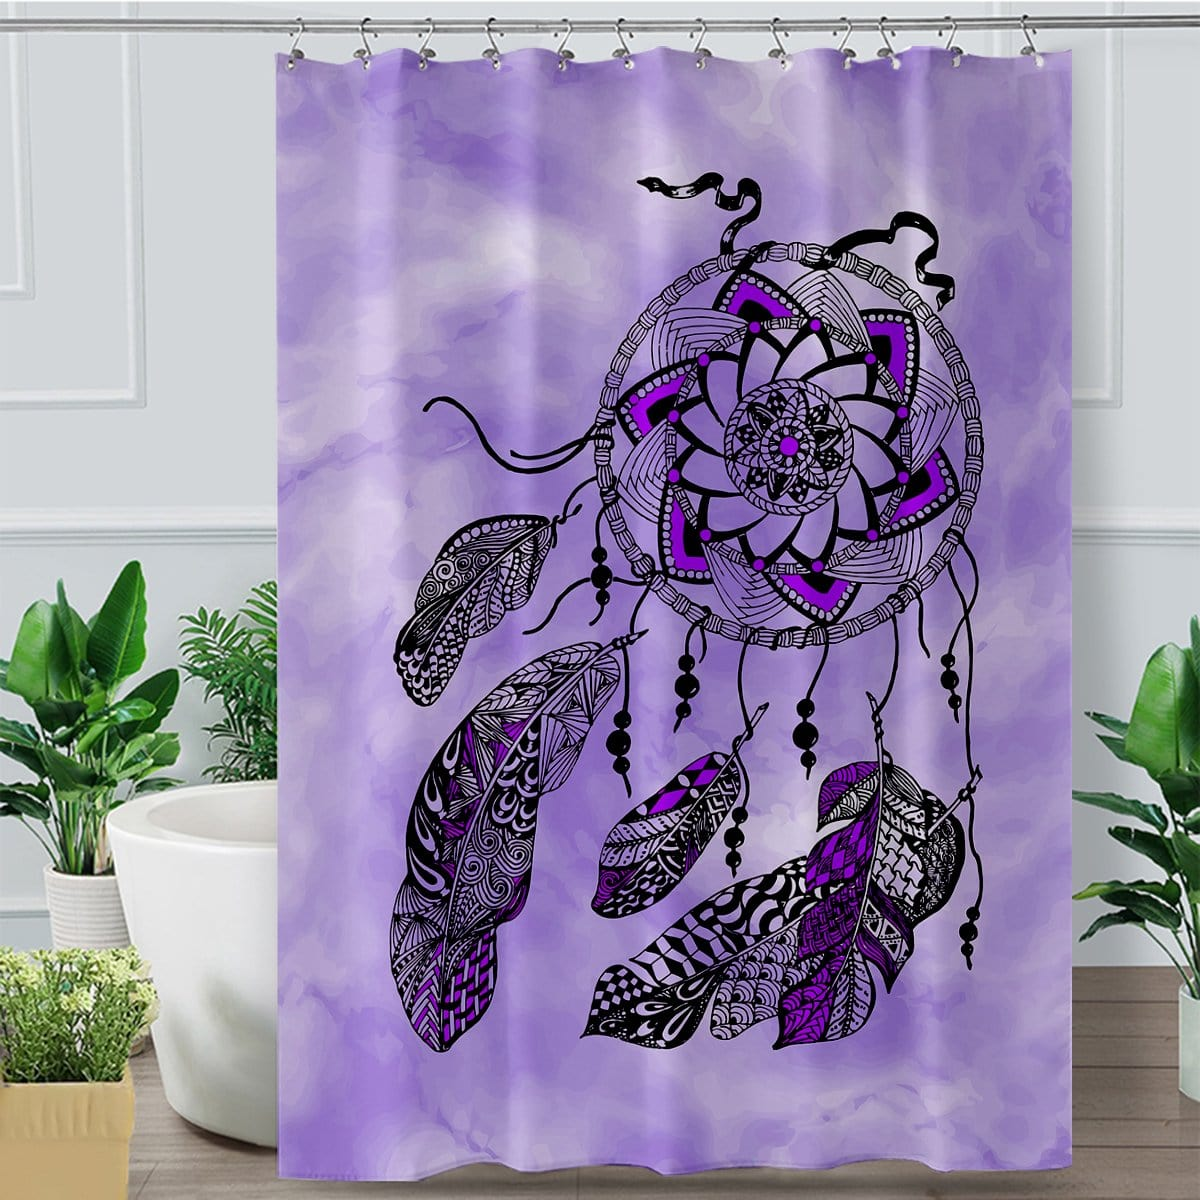 Namaste Dreamcatcher Purple Shower Curtain-Namaste Dreamcatcher Purple-Little Squiffy